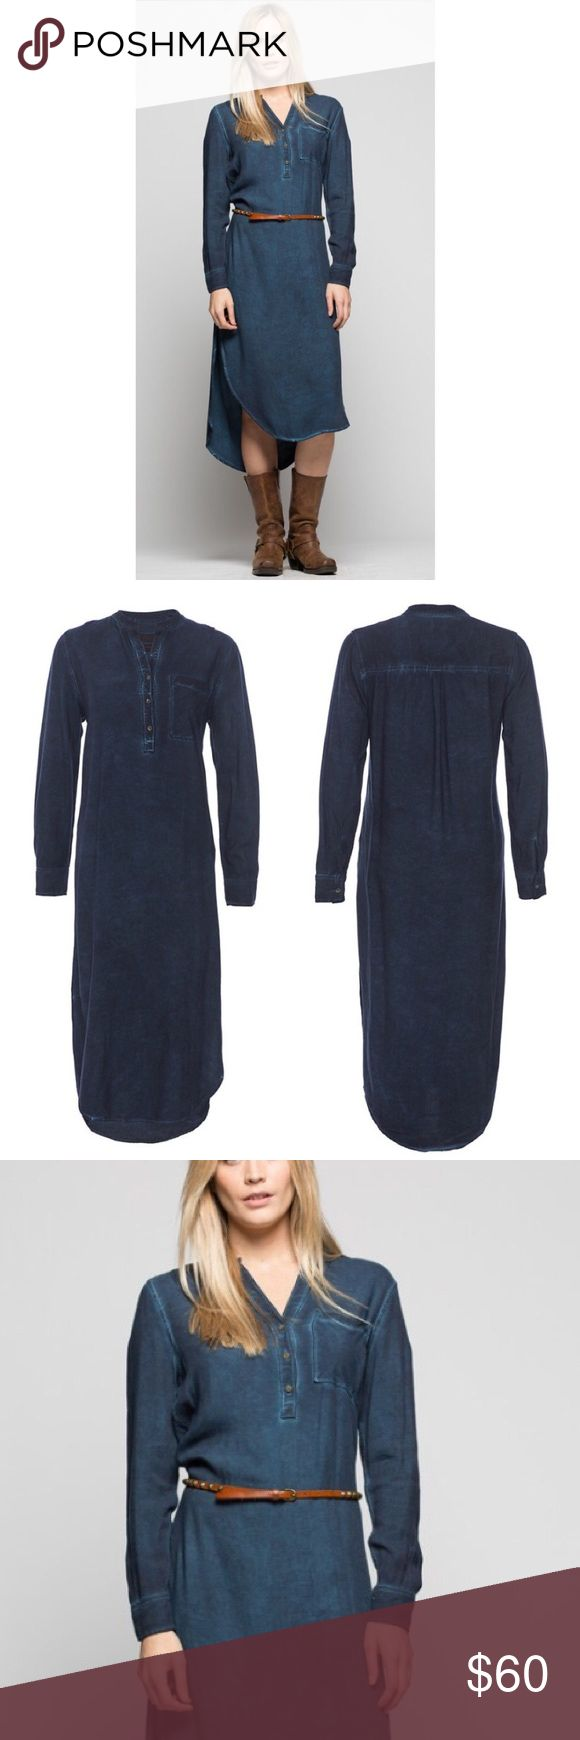 Popover long sleeve navy shirt dress NEW A popover half placket maxi shirt dress in a woven rayon fabric with a cold pigment dye. Belt is NOT included 😞 100% rayon One pocket body  Imported                                                                 size Medium Jachs Dresses Midi